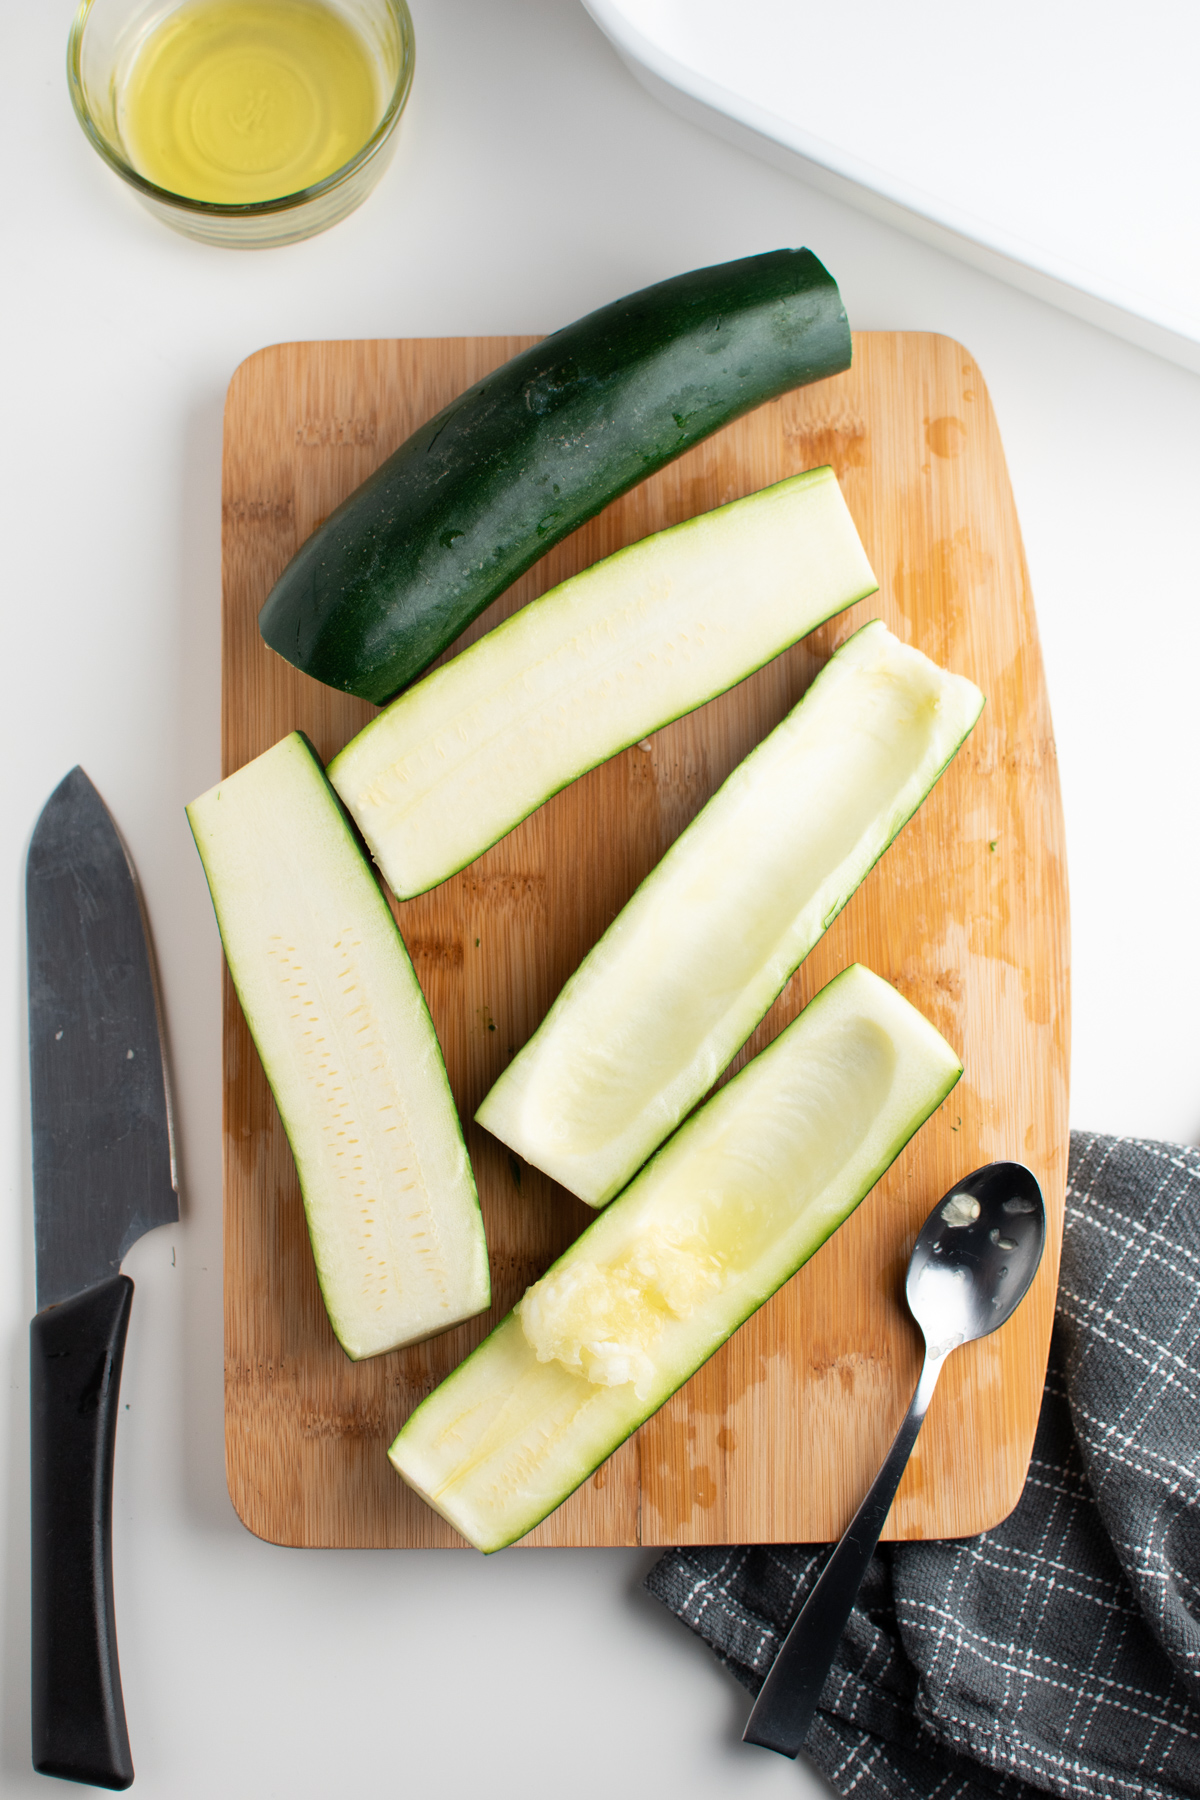 Hollowed out zucchini boats on cutting board next to knife and spoon.